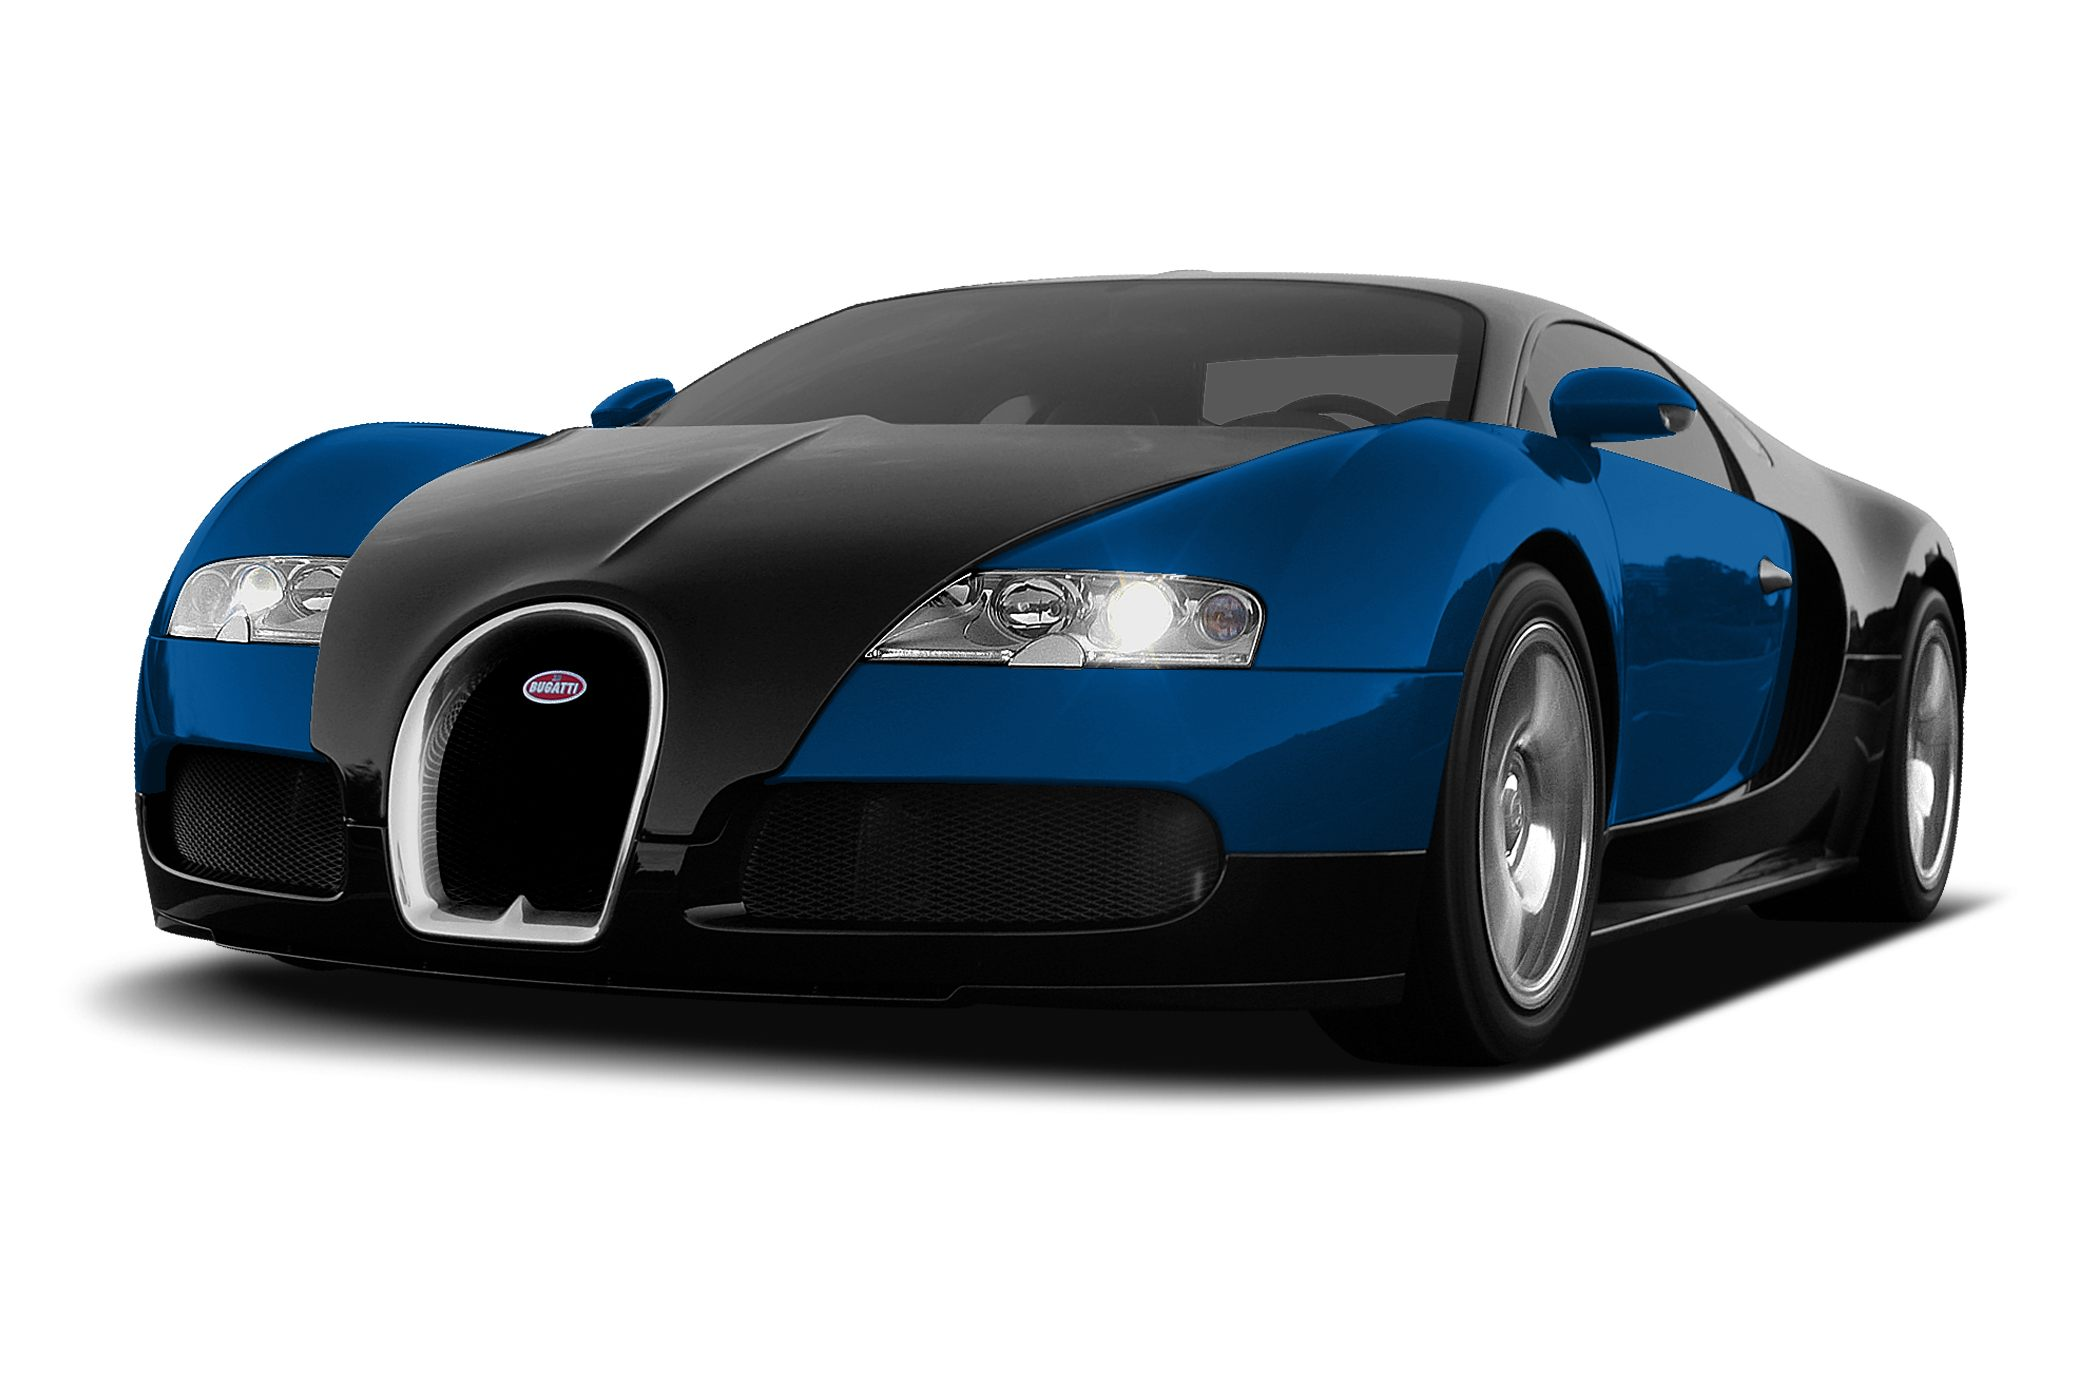 USB90BGC011A0101 Exciting Bugatti Veyron Cost for Oil Change Cars Trend